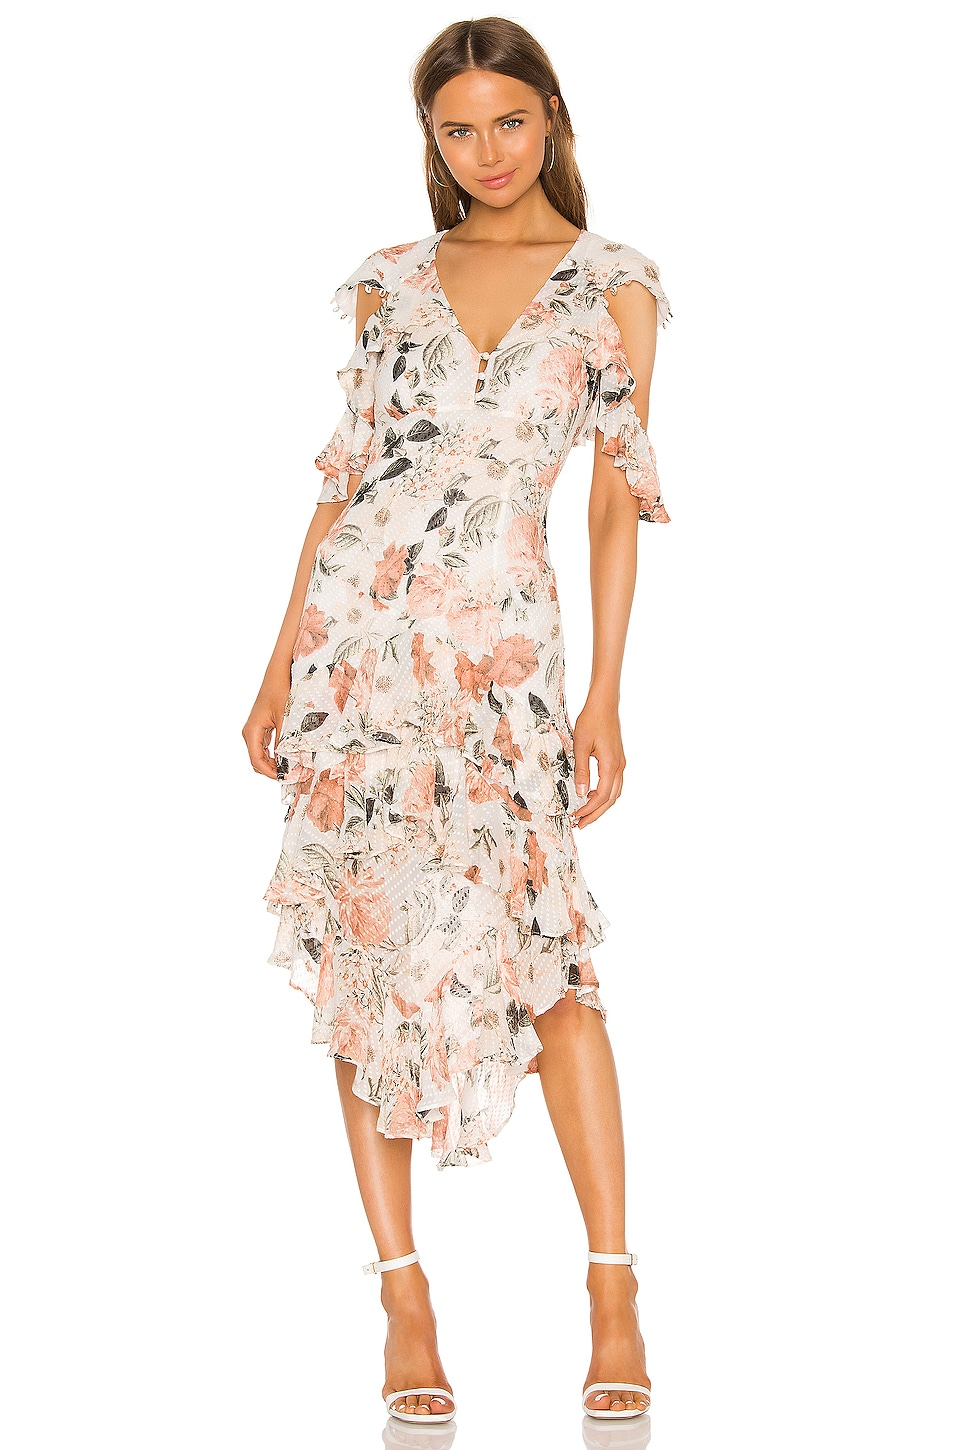 THURLEY Odette Dress in Eden Floral & Ivory